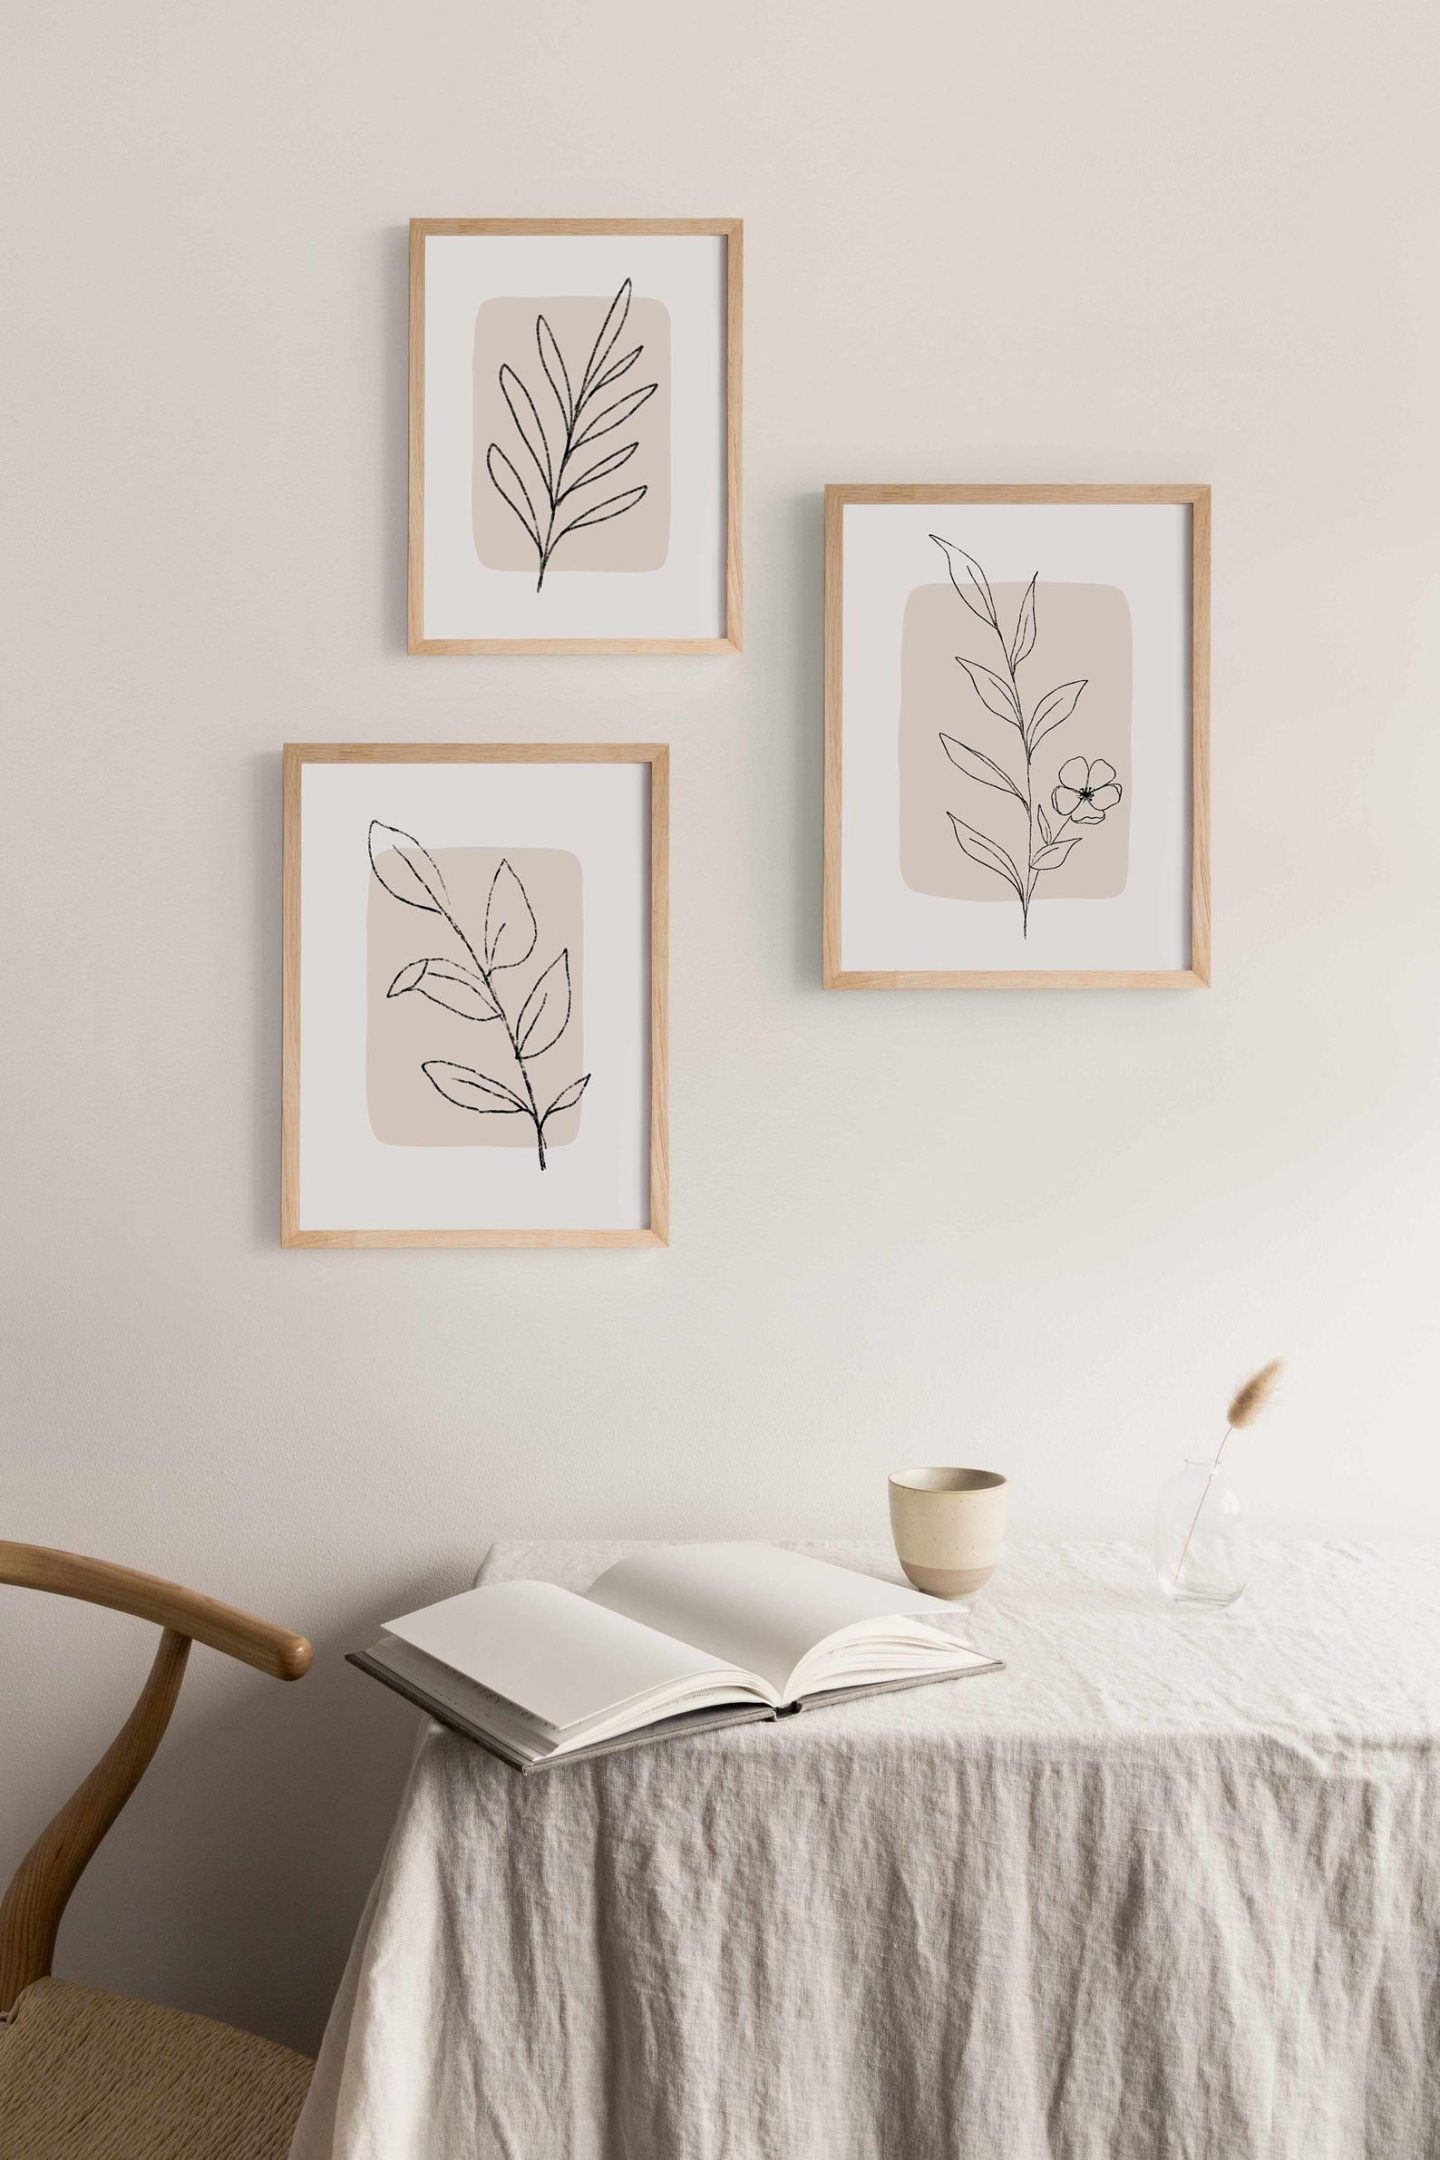 Minimalist wall decor with plants and leaves